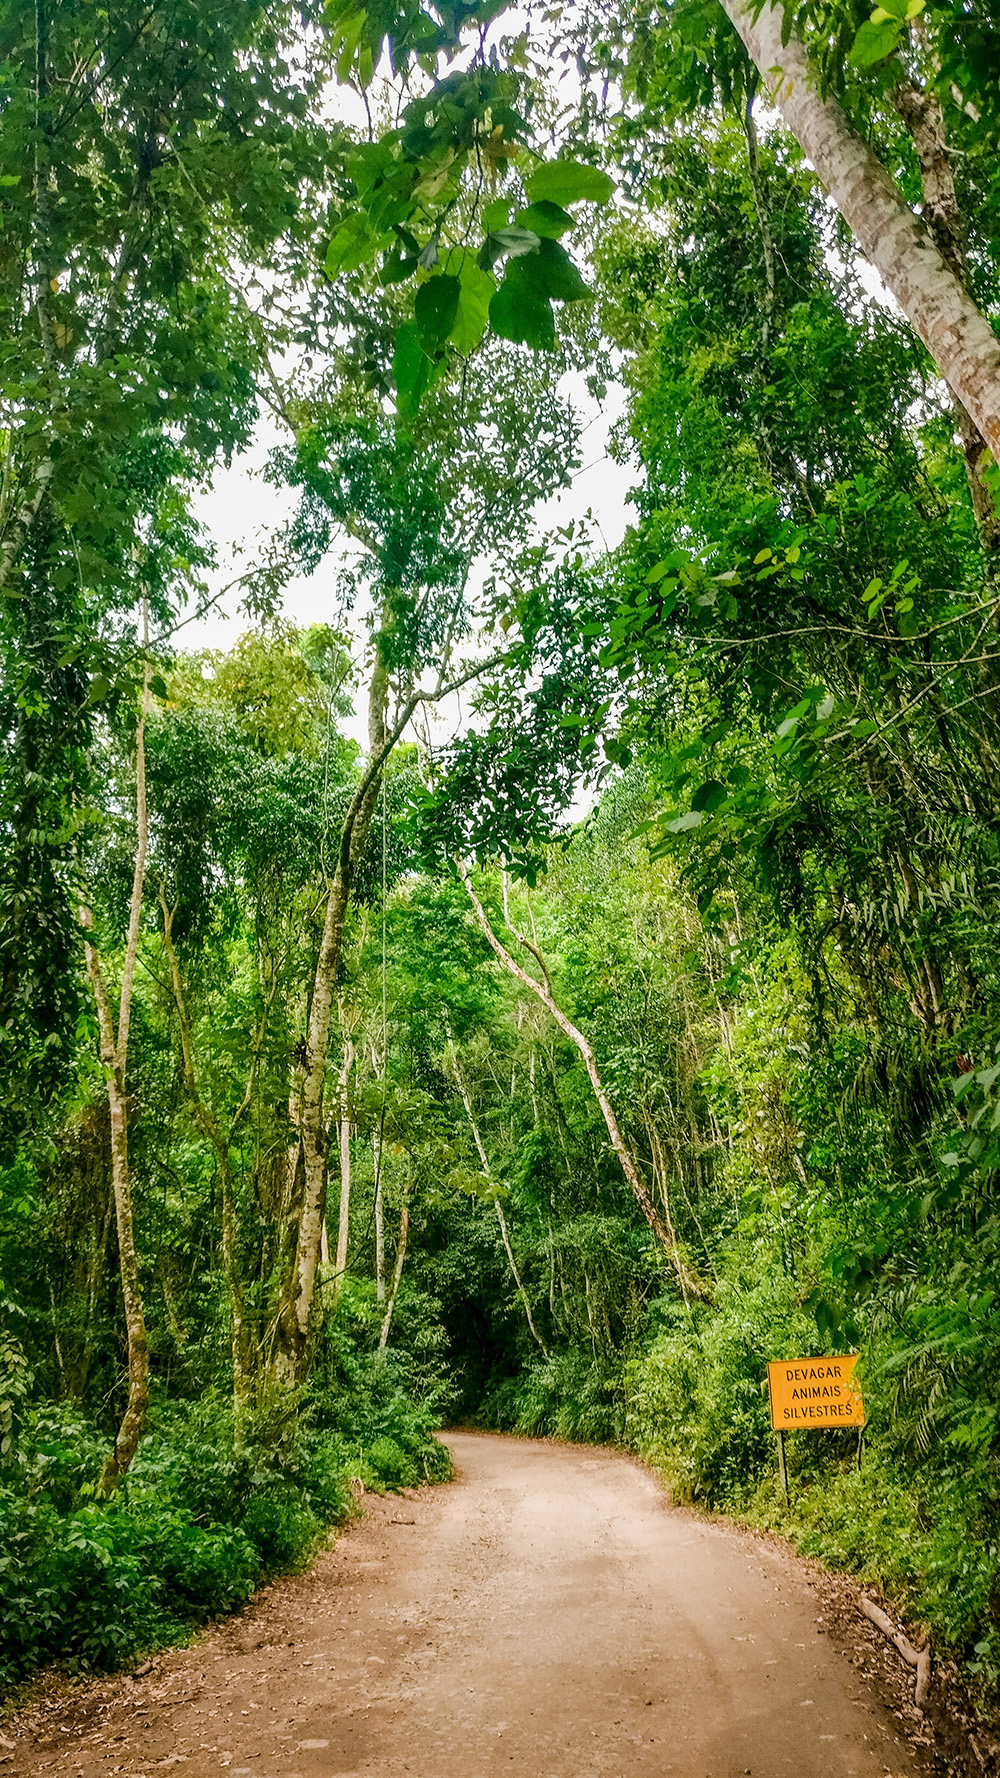 The Brazilian jungle - How to spend 3 days in Ilhabela, Brazil? | Aliz's Wonderland